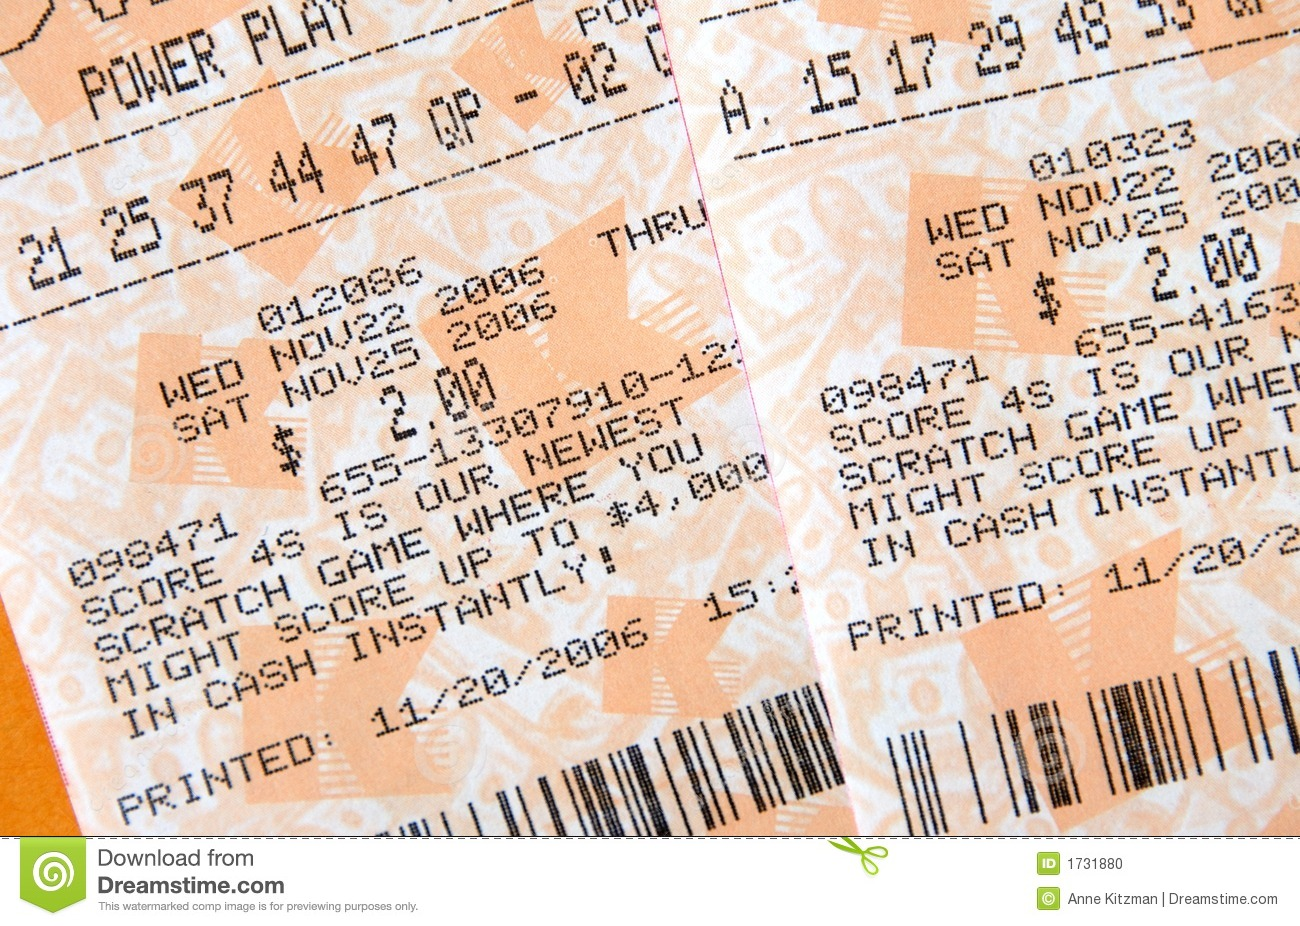 the lottary ticket essay The lottery ticket - anton chekhov as a part of human nature it is evitable that we act selfishly once faced with a situation of good fortune we're simply programmed this way it's our natural instinct to react as a greedy human being.